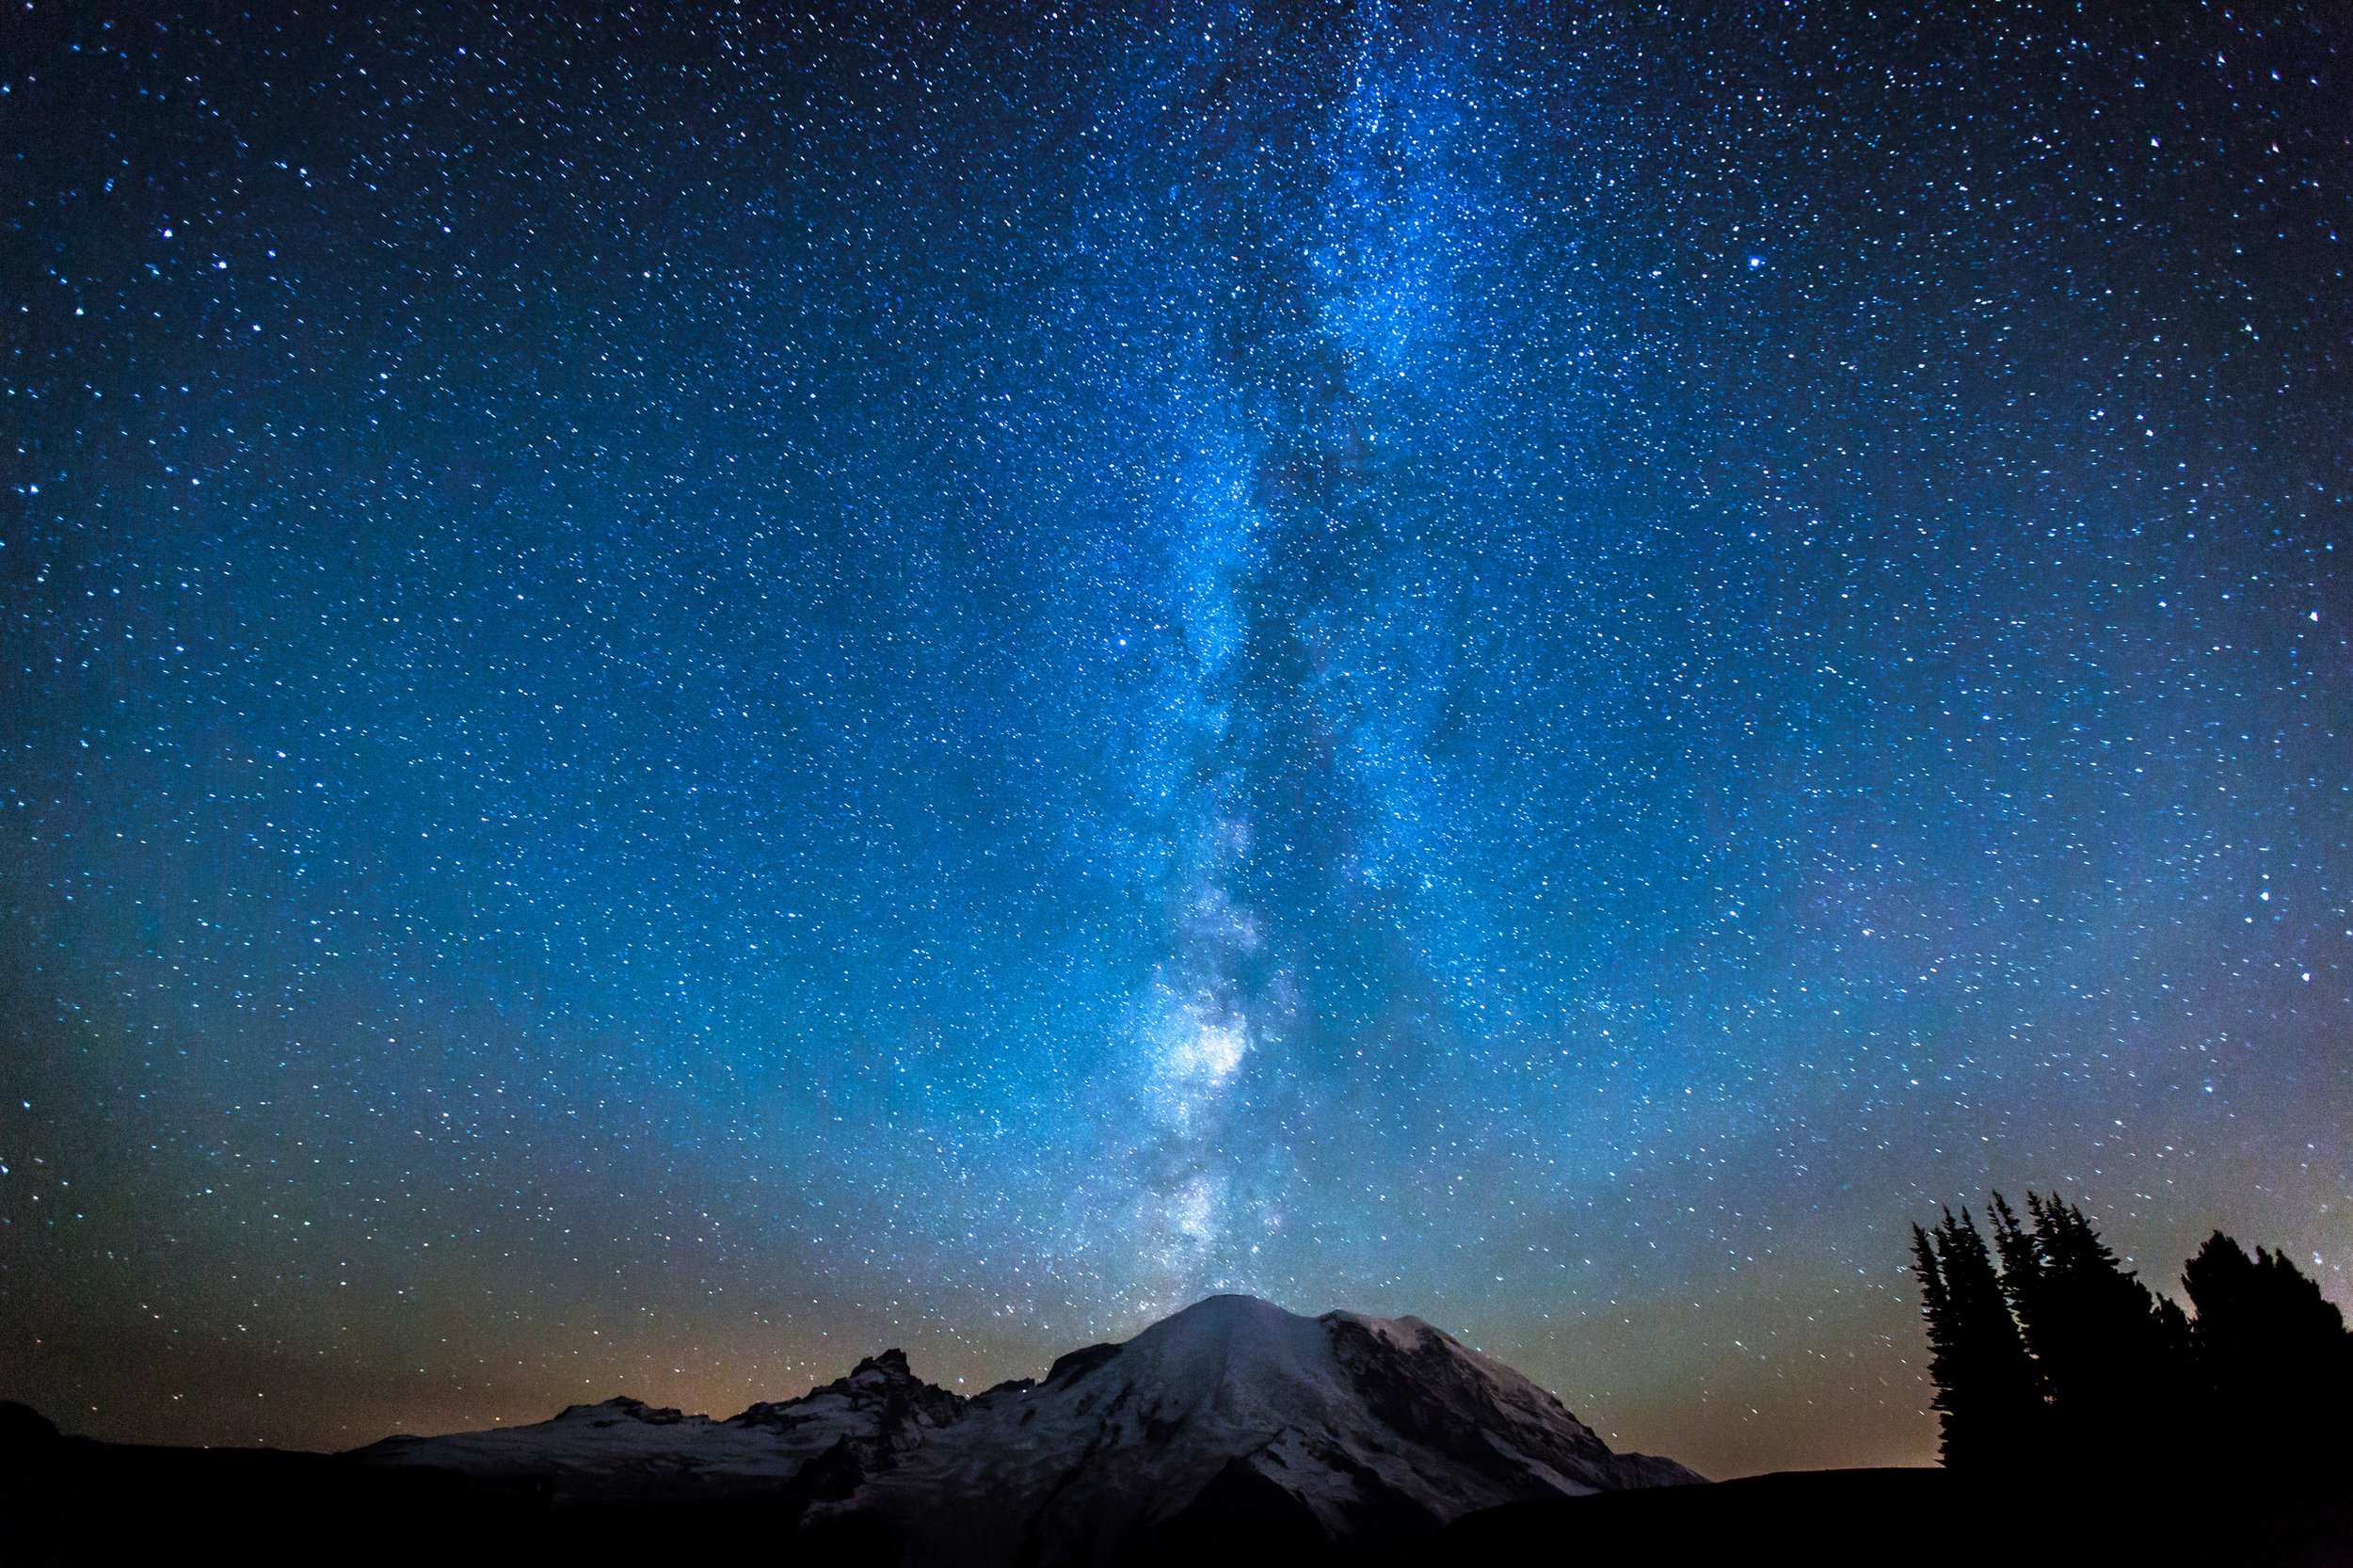 cindy_giovagnoli_mount_rainier_national_park_night_photography